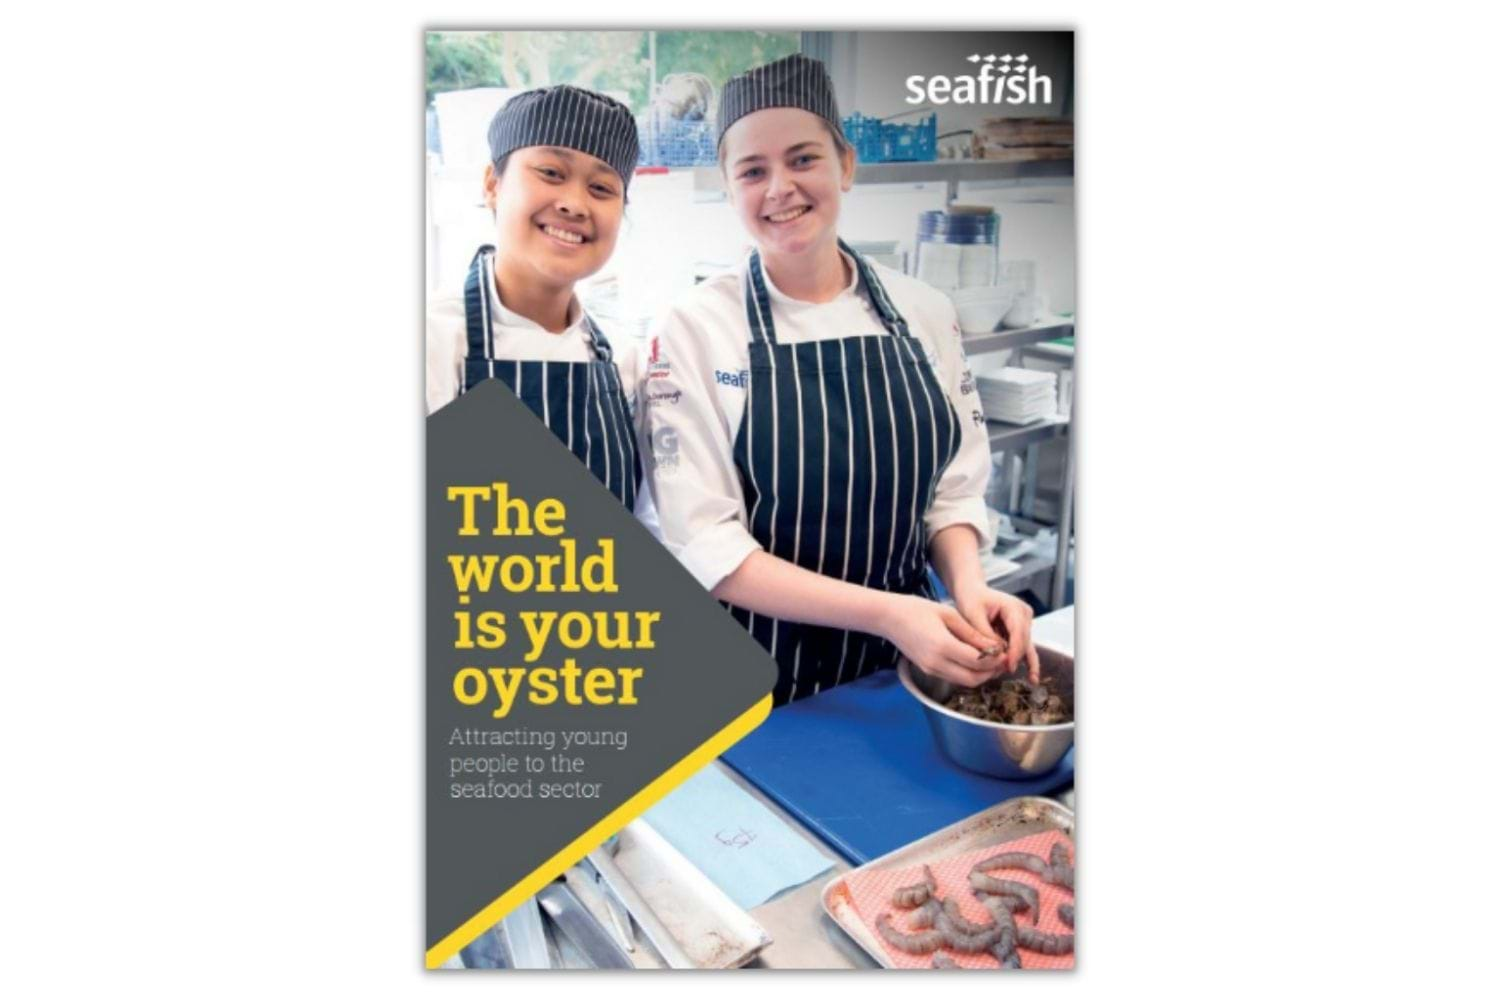 Report cover - The world is your oyster - Attracting young people to the seafood sector. Image features two chefs preparing prawns